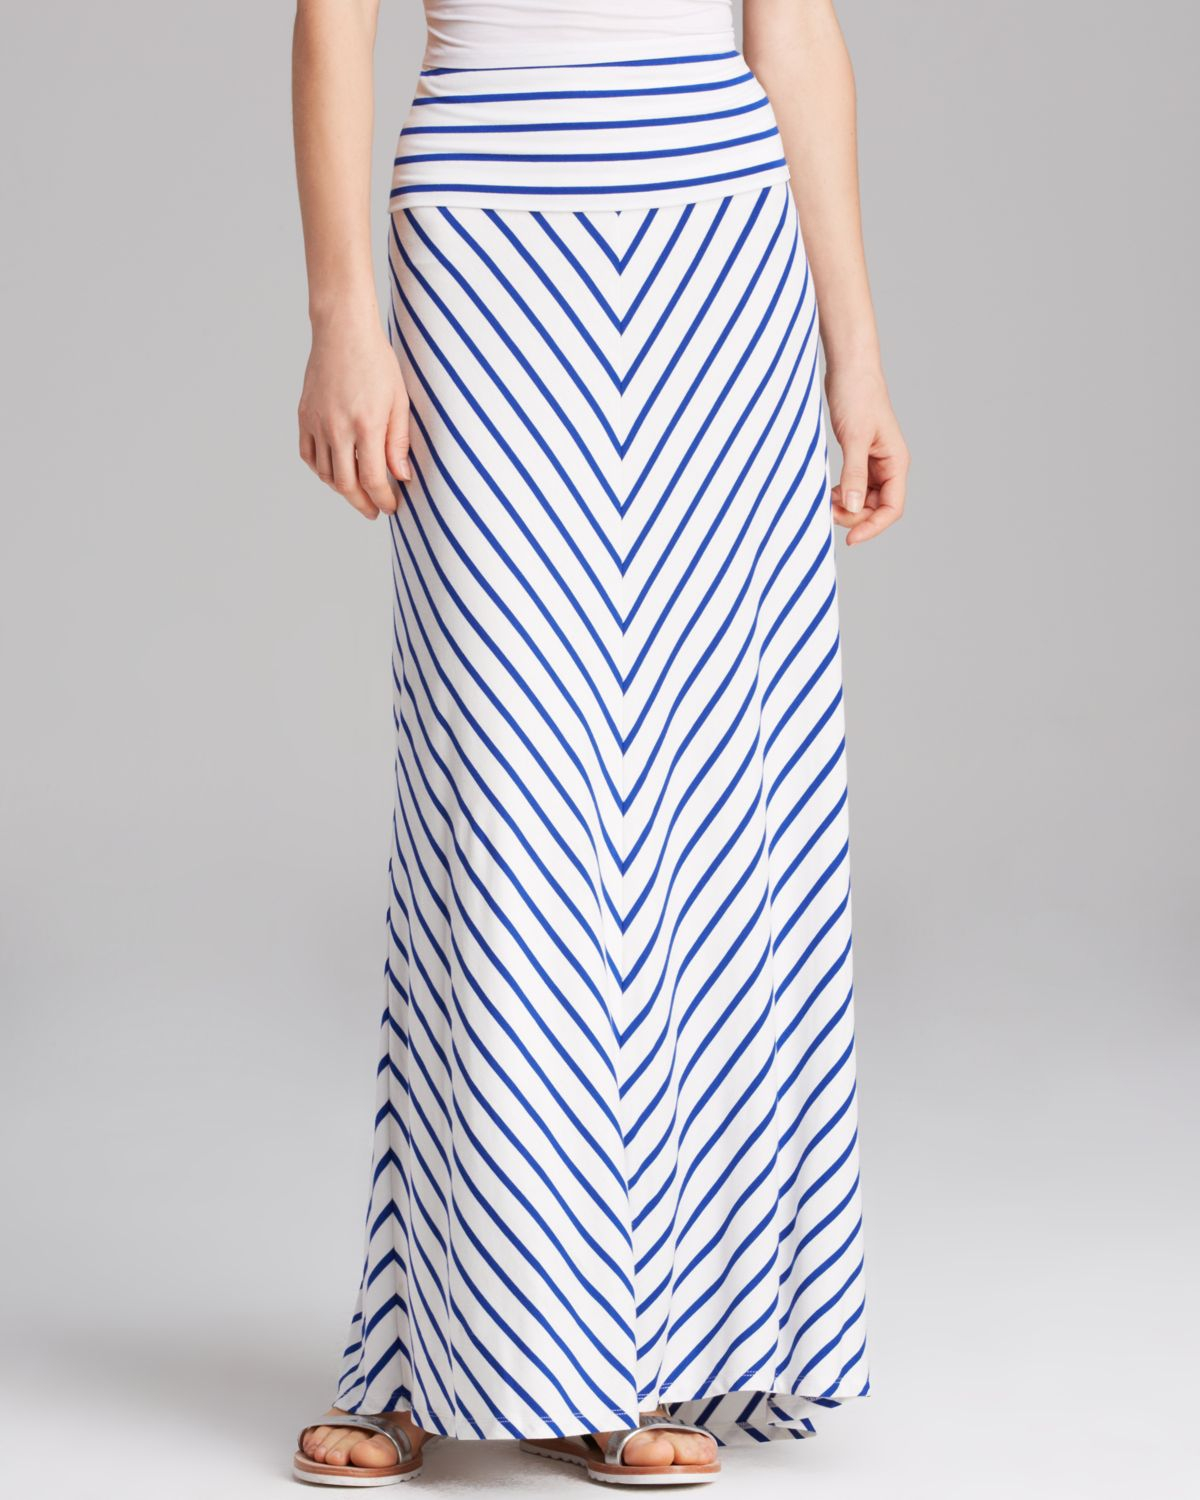 Blue And White Striped Long Skirt - Dress Ala